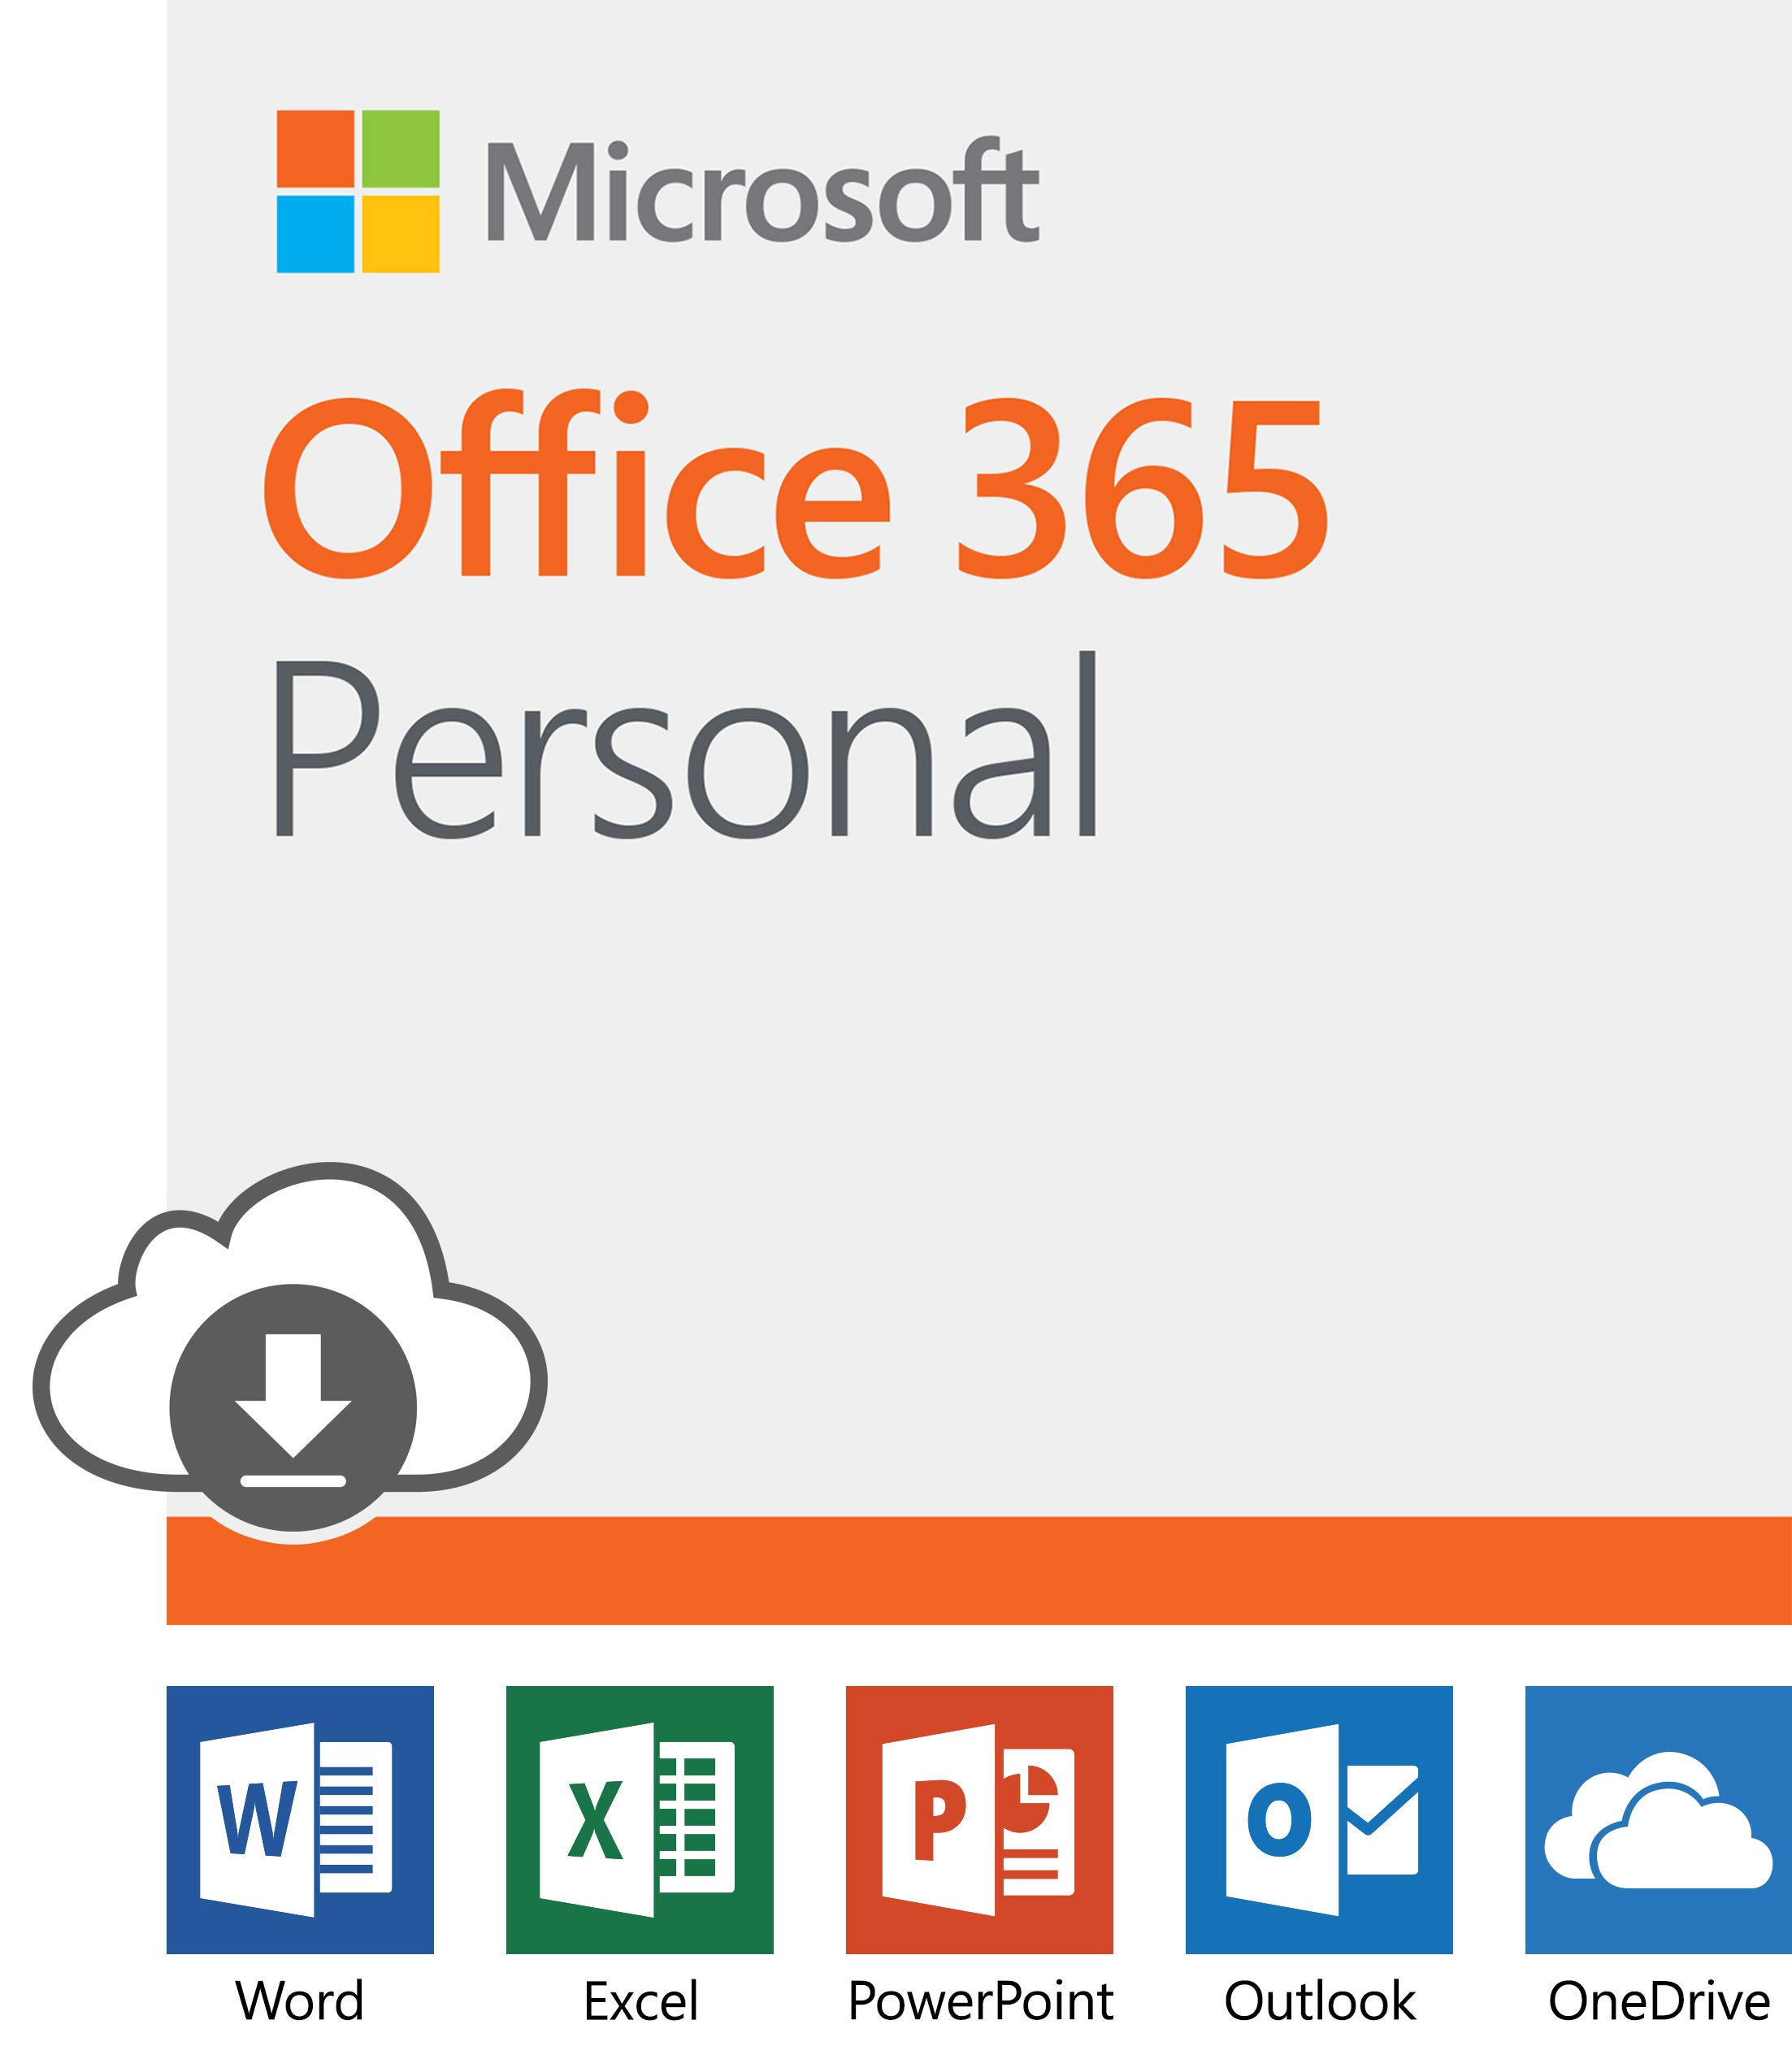 Microsoft Office 365 Personal | 12-month subscription with Auto-renewal, 1 person, PC/Mac Download by Microsoft